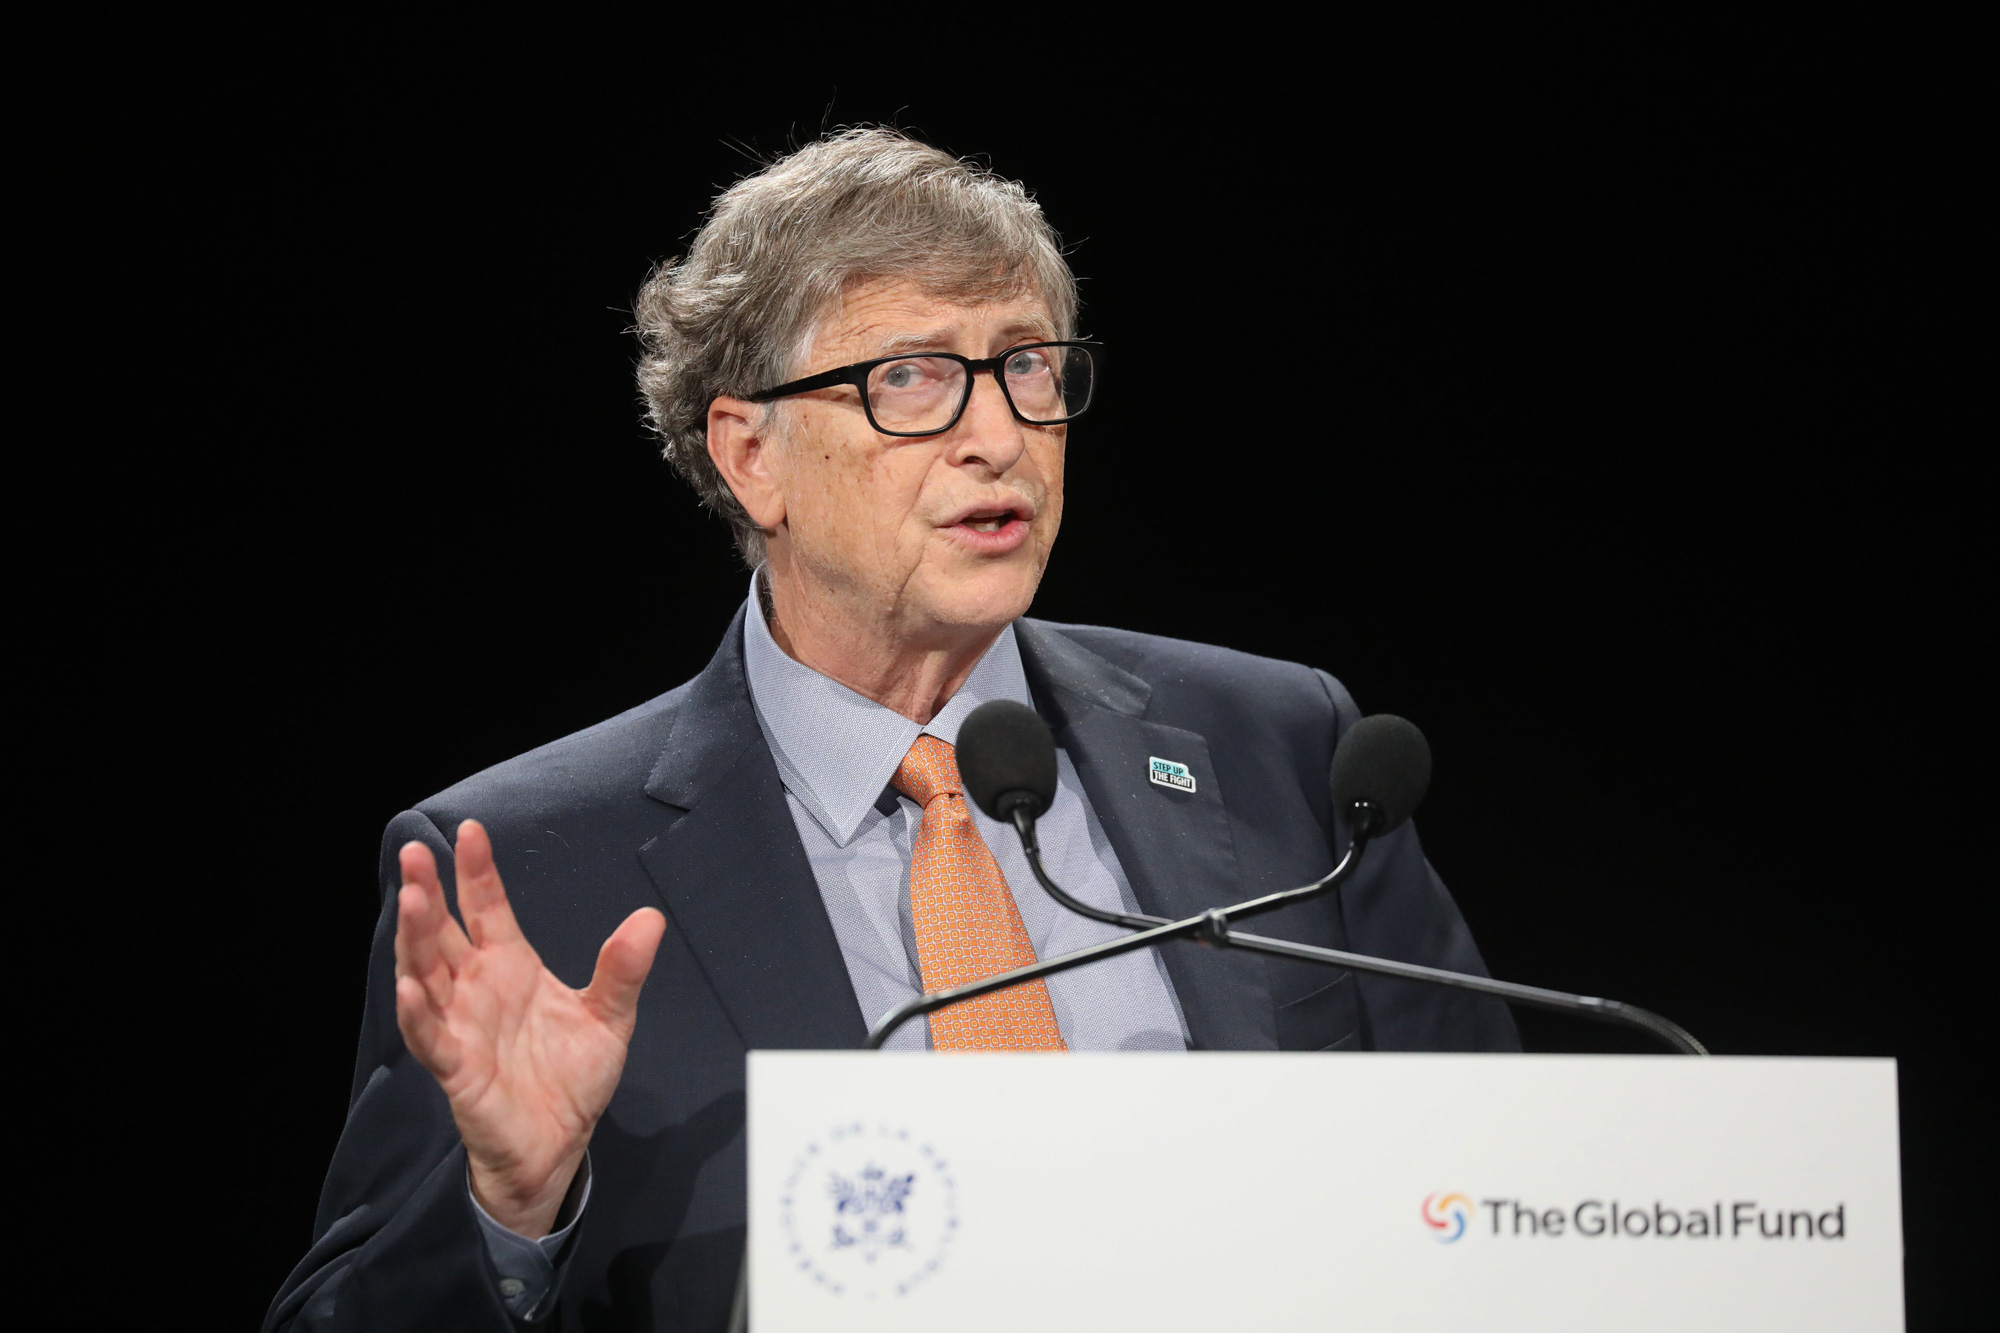 Bill Gates, founder of Microsoft and co-chair of the Bill and Melinda Gates Foundation, delivers a speech during the conference of Global Fund to Fight HIV, Tuberculosis and Malaria on October 10, 2019, in Lyon, France.